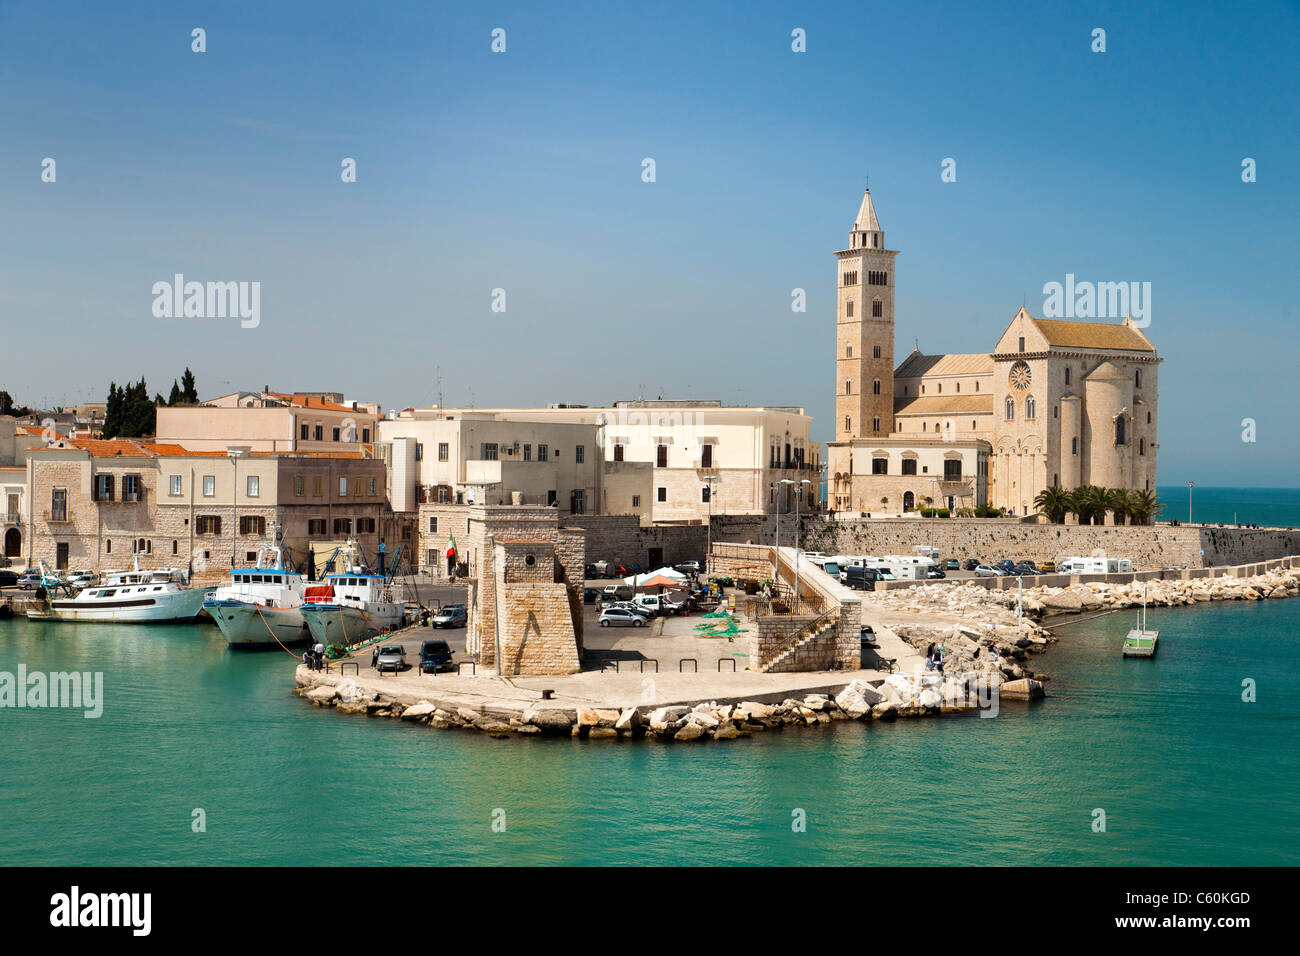 Trani habour and cathedral, Trani, Southern Italy. - Stock Image